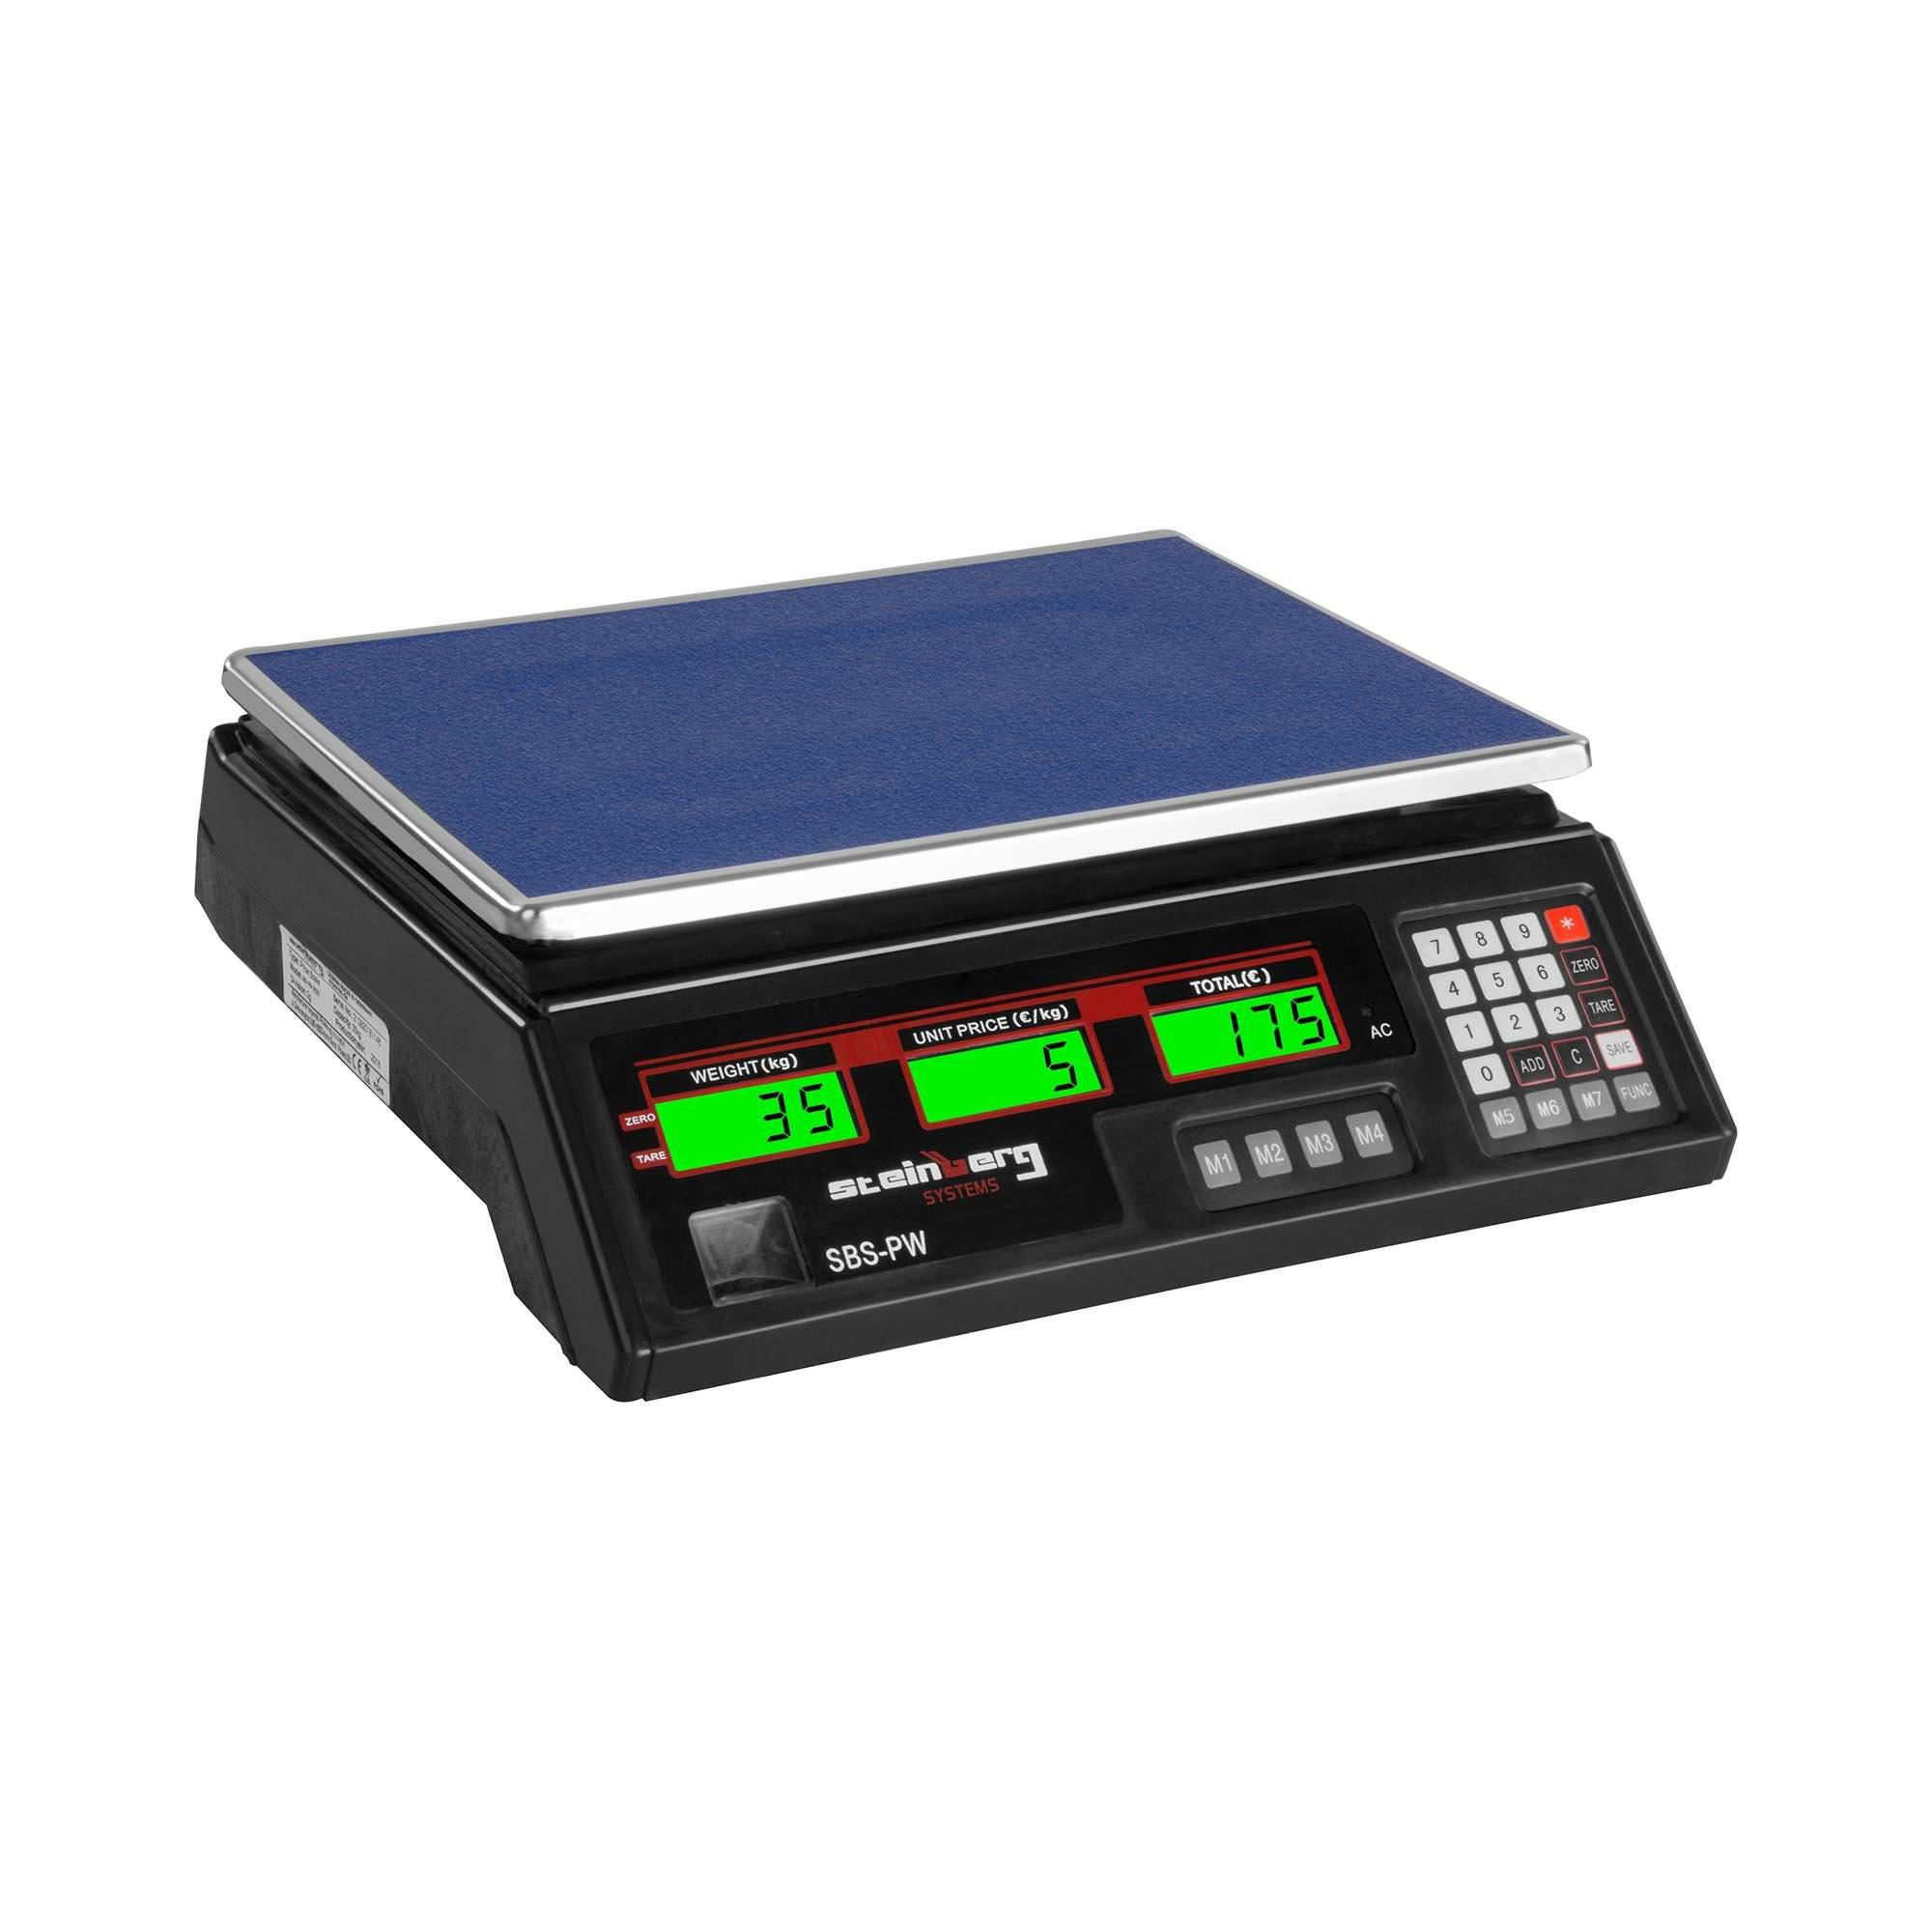 Steinberg Systems Balance poids-prix - 35 kg / 2 g - noire - LCD SBS-PW-352B